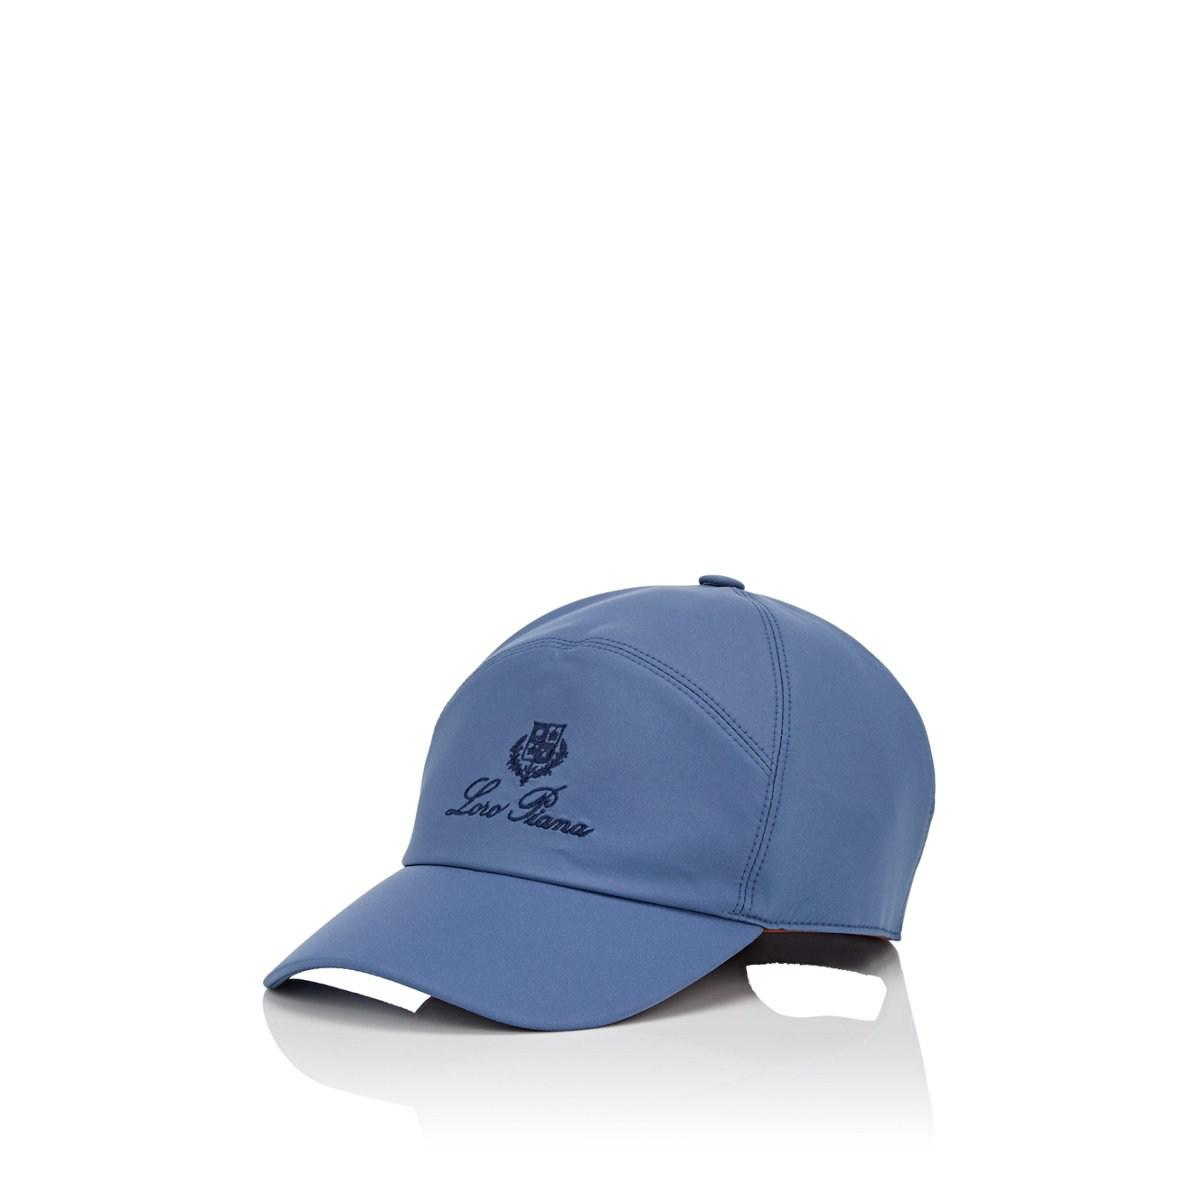 a06ffb8e Lyst - Loro Piana Merlin Ty Logo Baseball Cap in Blue for Men